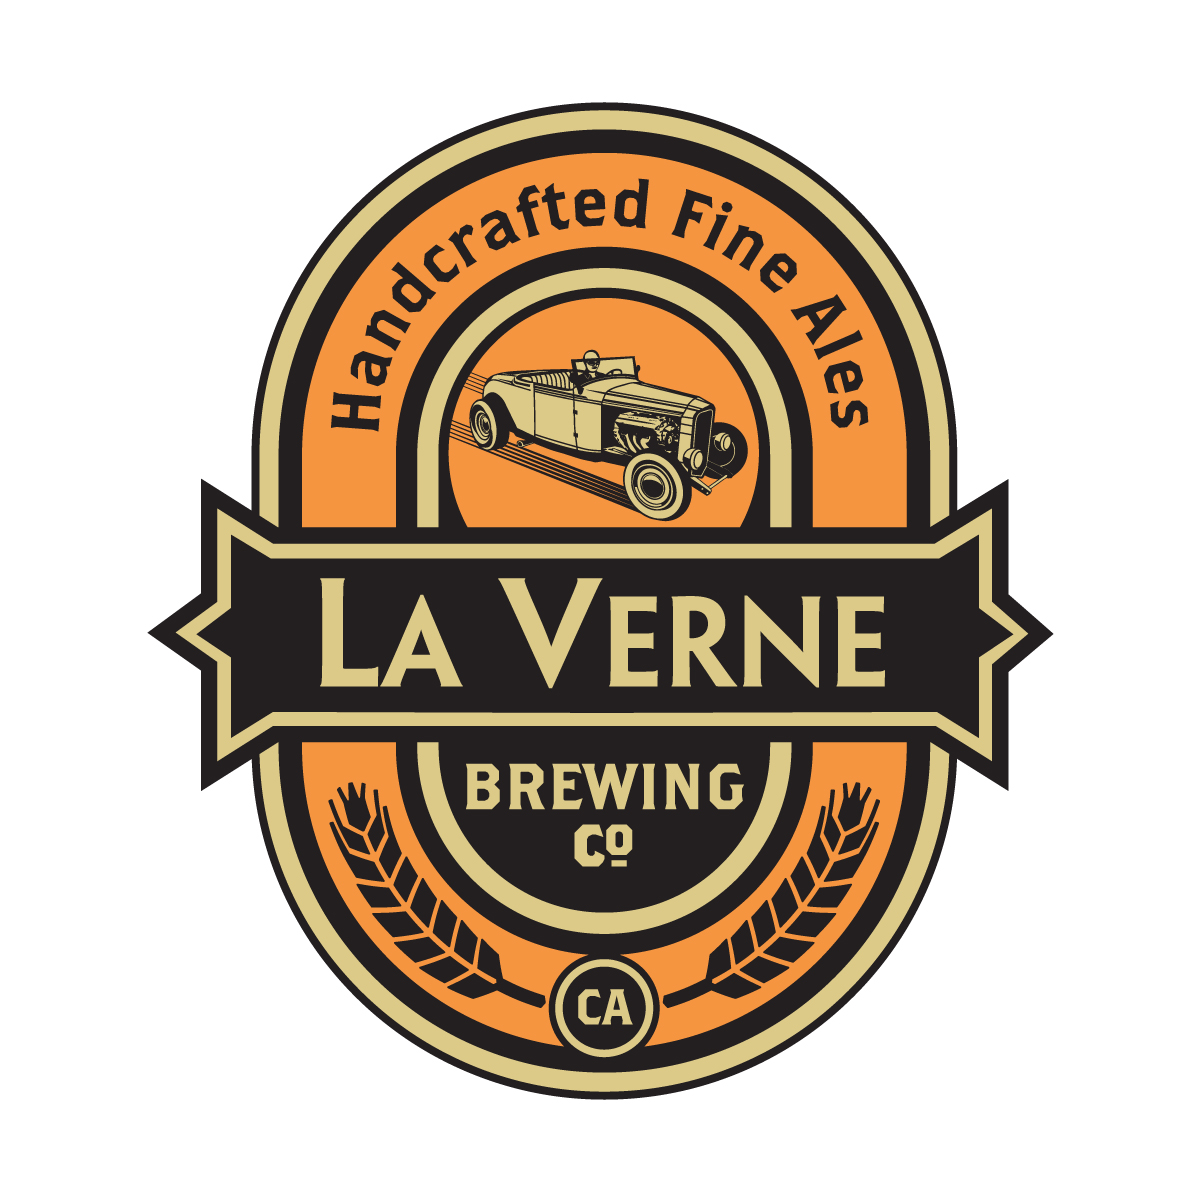 La Verne Brewing Co